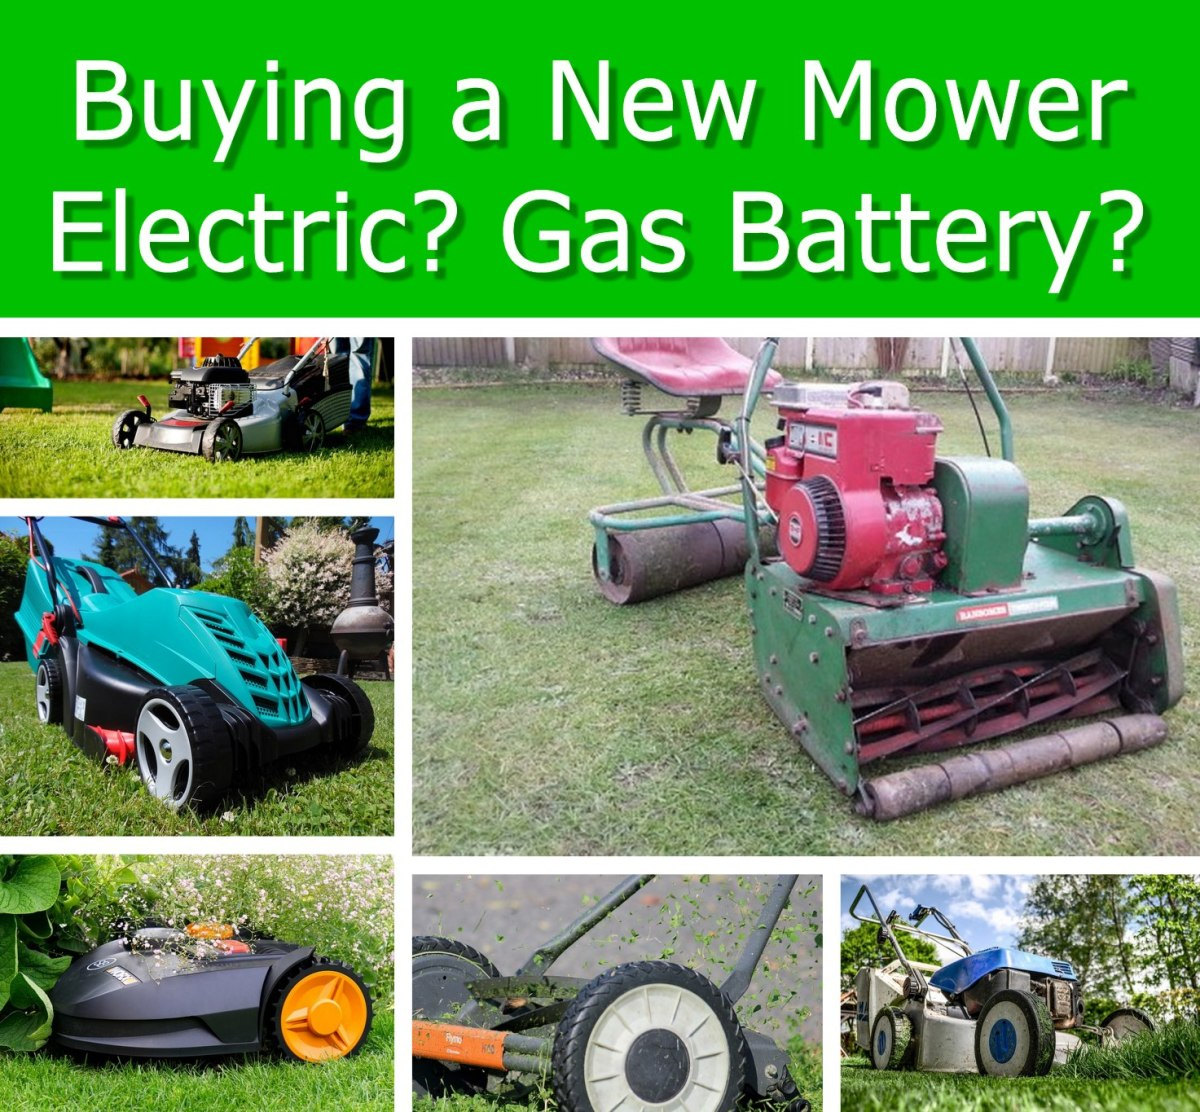 Buying a Lawn Mower— Which is Best? Electric, Gas or Battery?